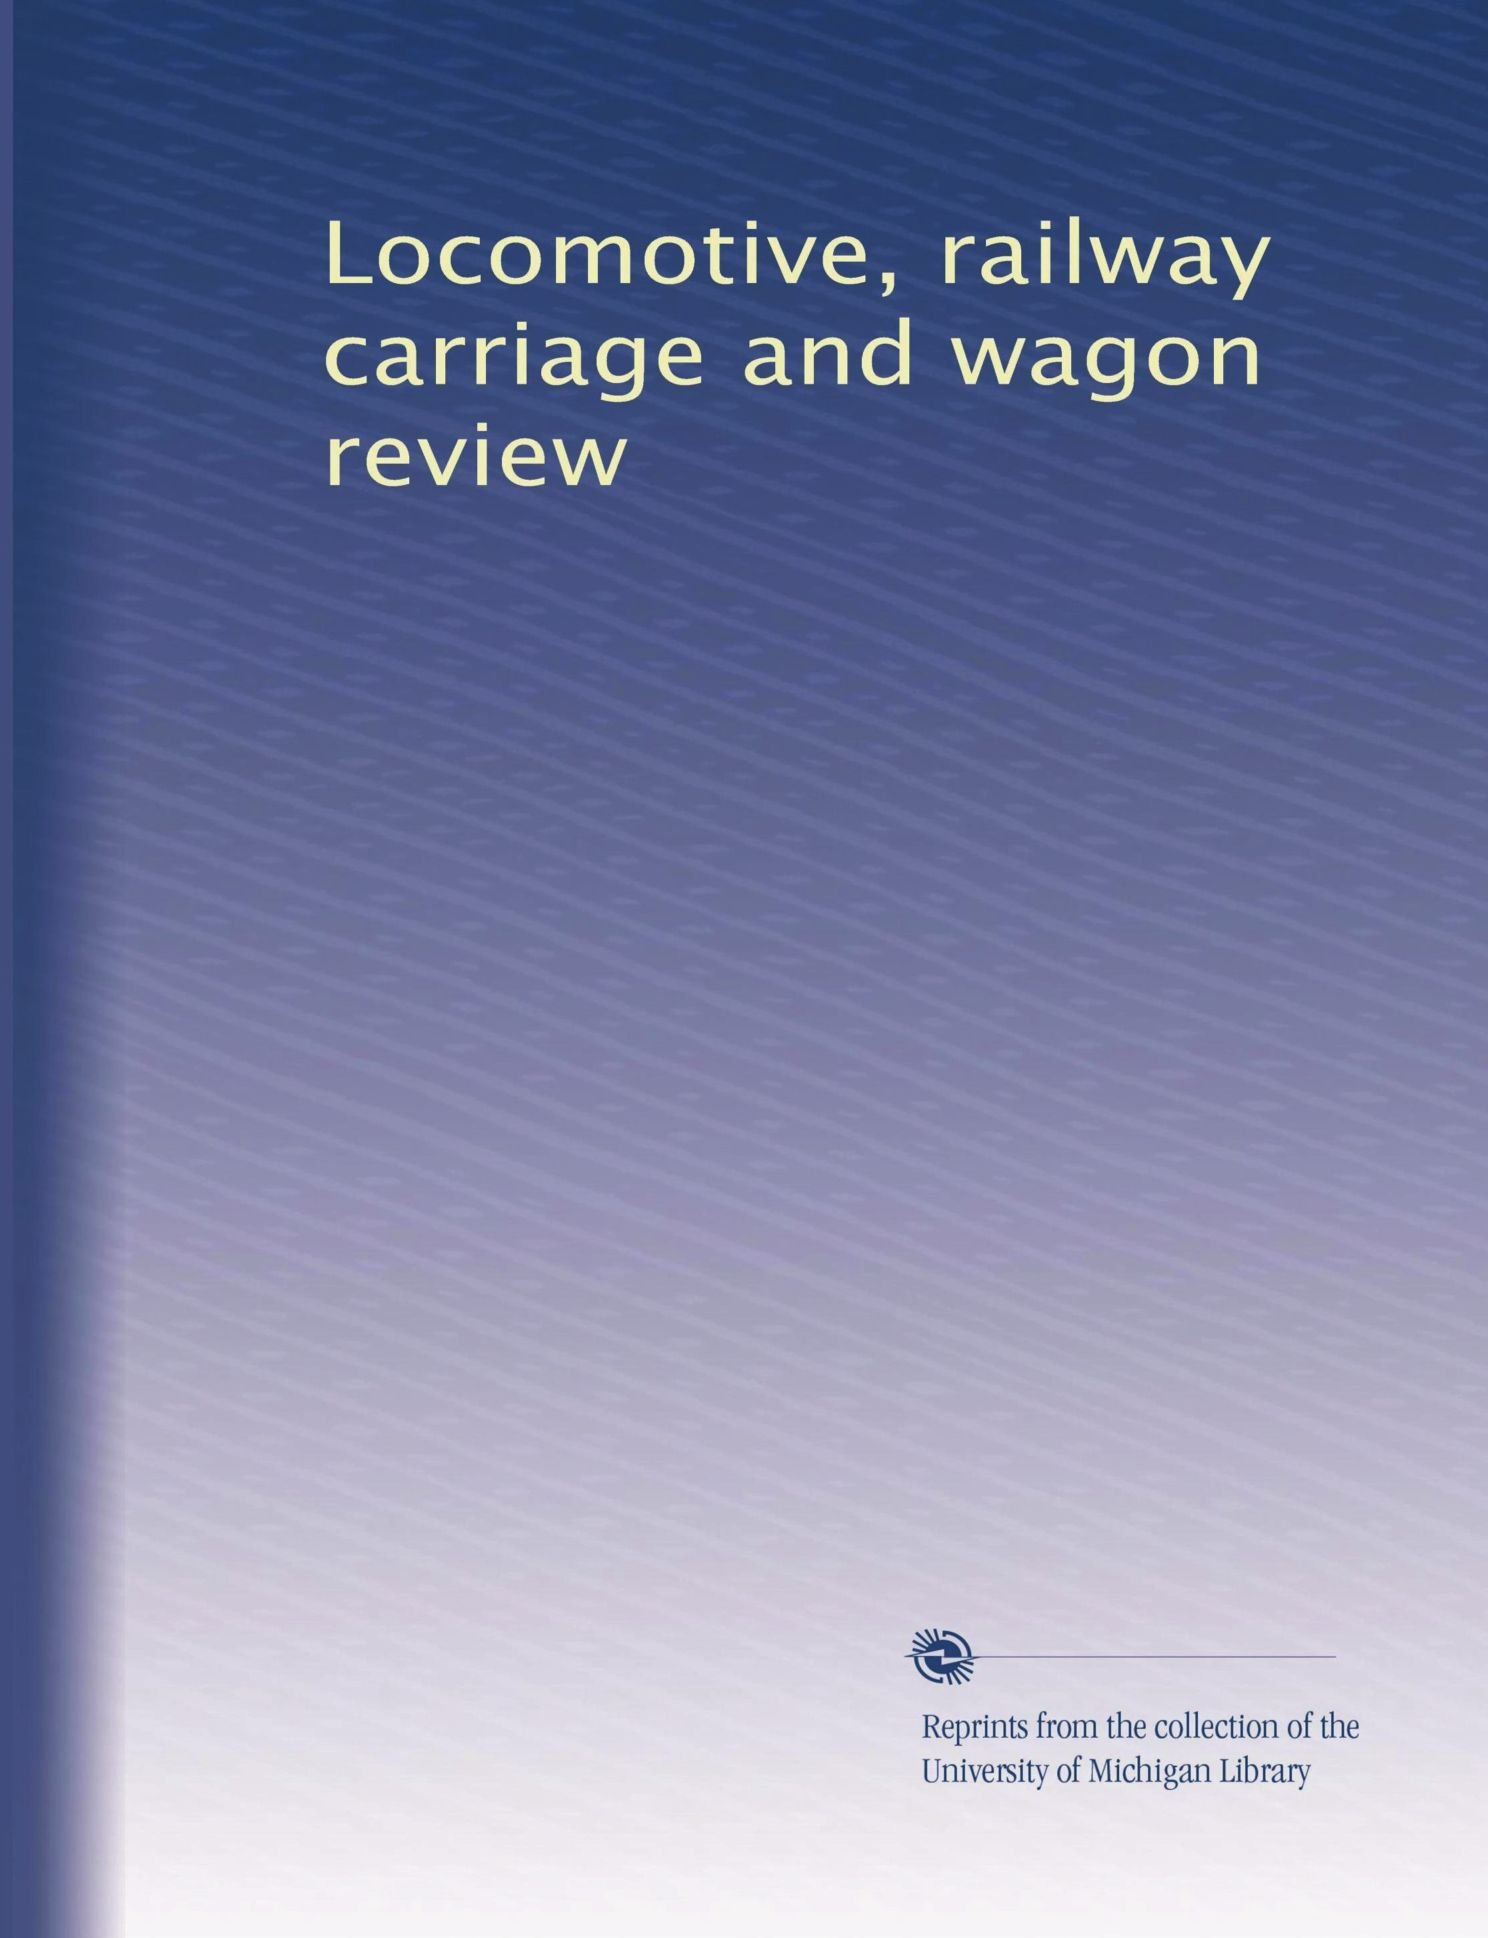 Locomotive, railway carriage and wagon review ePub fb2 book